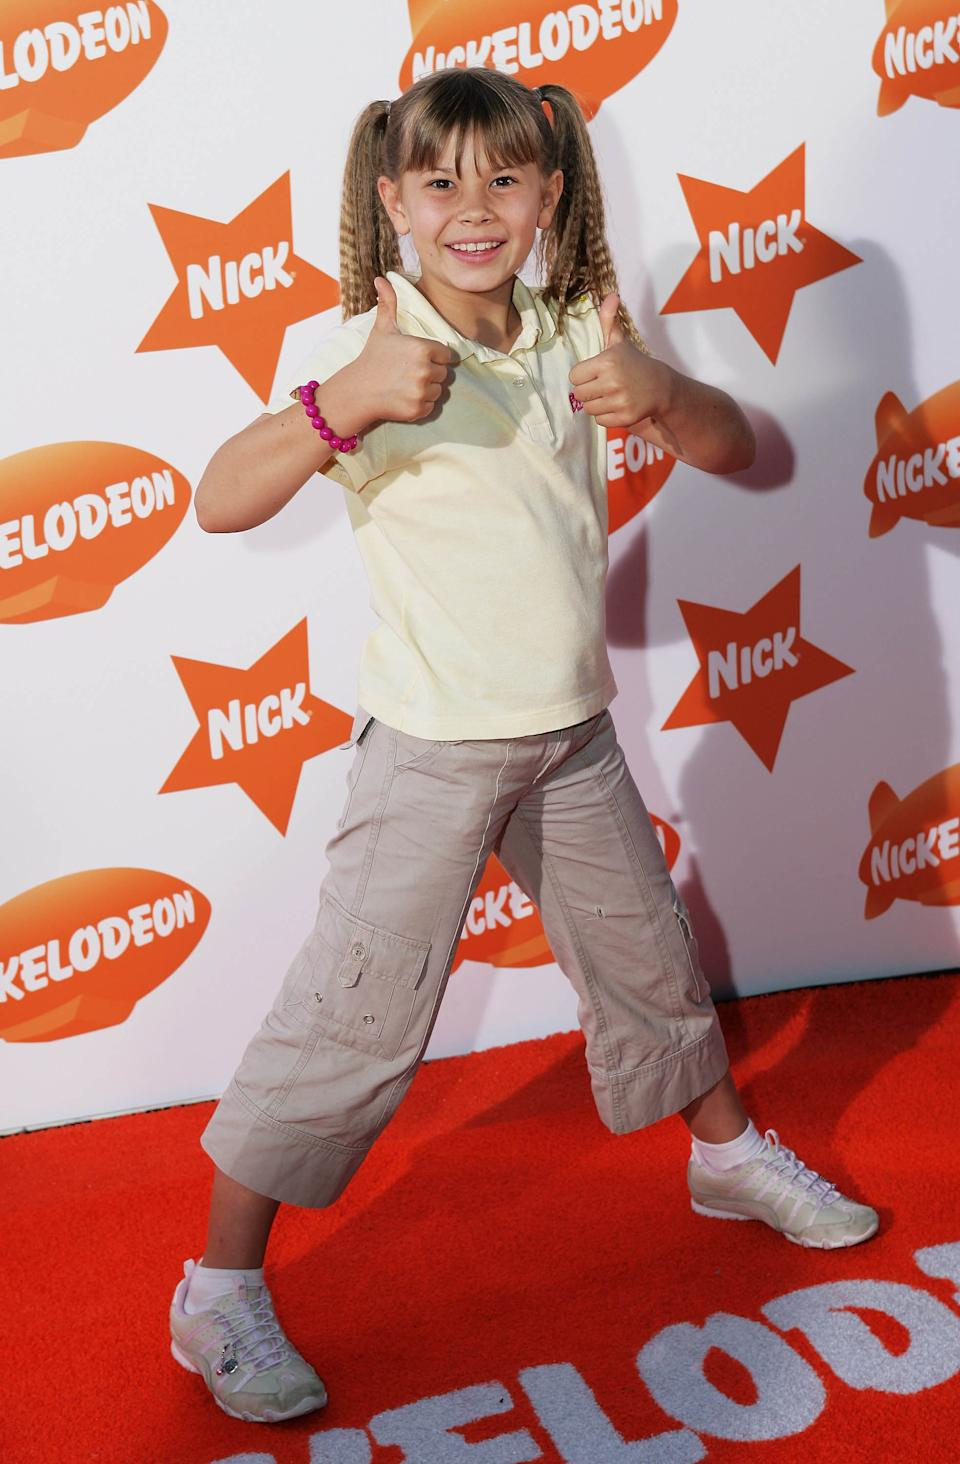 Bindi Irwin gives the camera the thumbs up at the Nickelodeon Australian Kids Choice Awards 2007 at the Sydney Entertainment Centre on October 10, 2007 in Sydney, Australia.